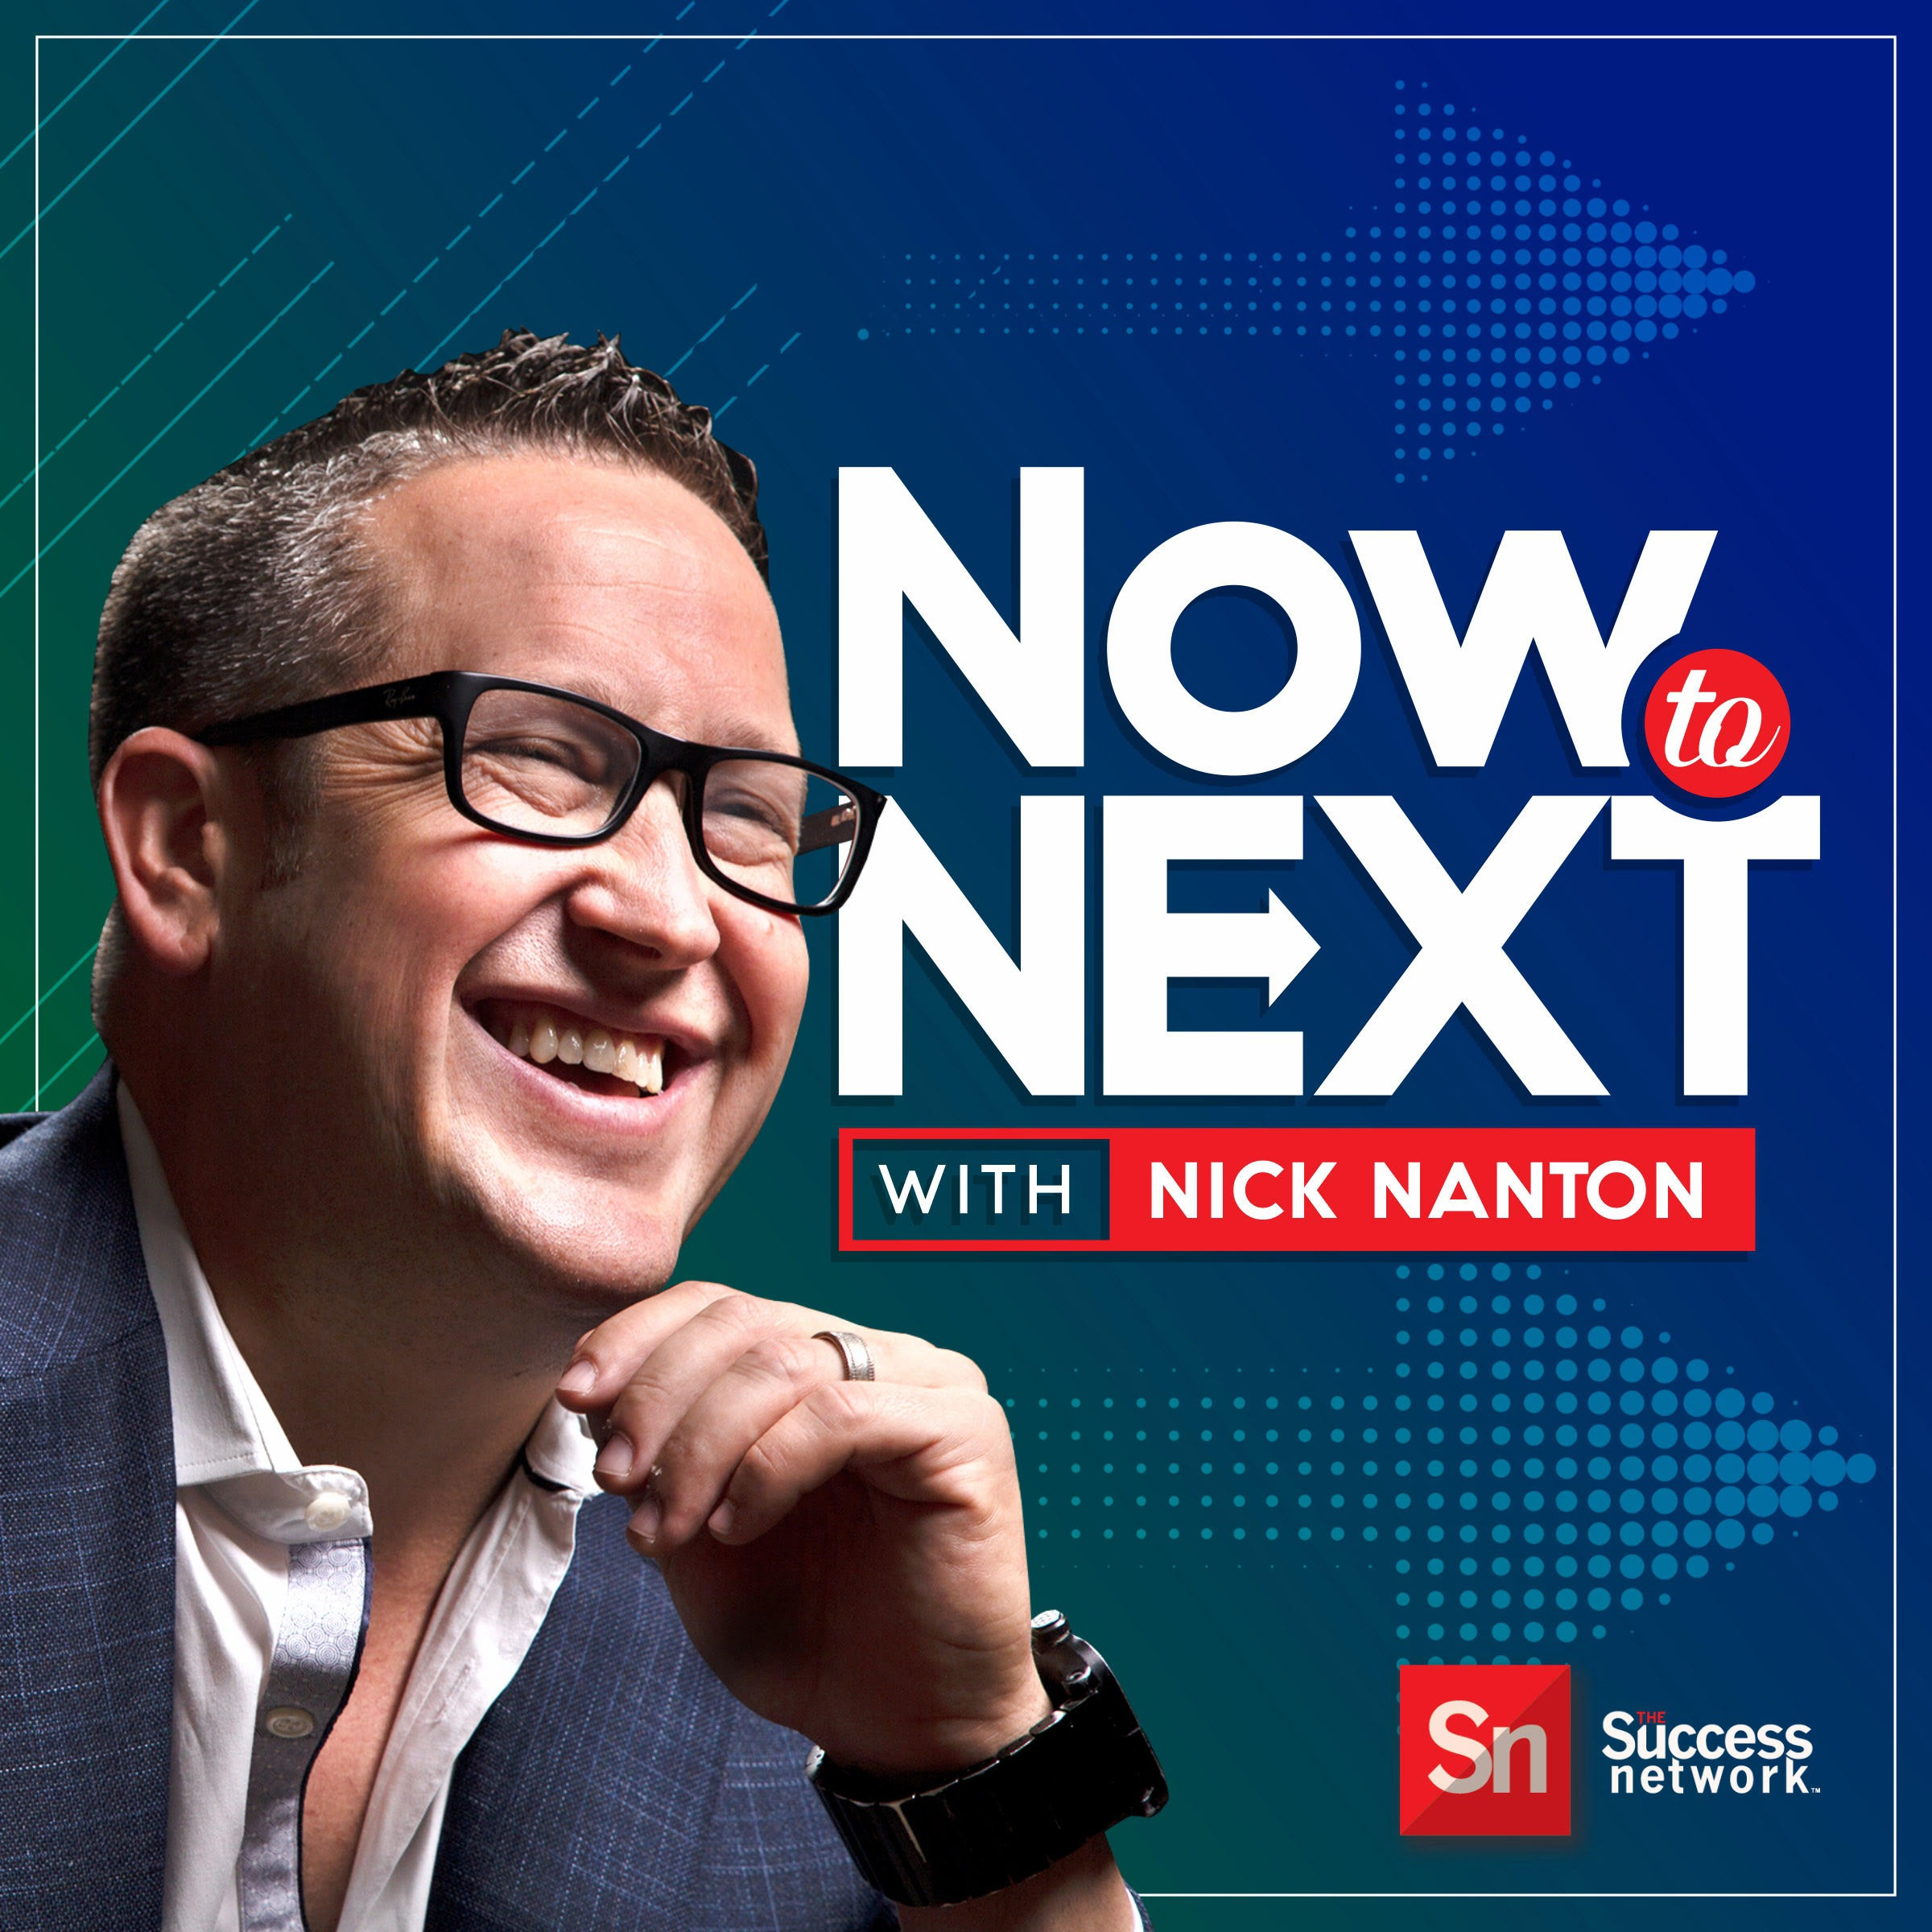 Now to Next with Nick Nanton